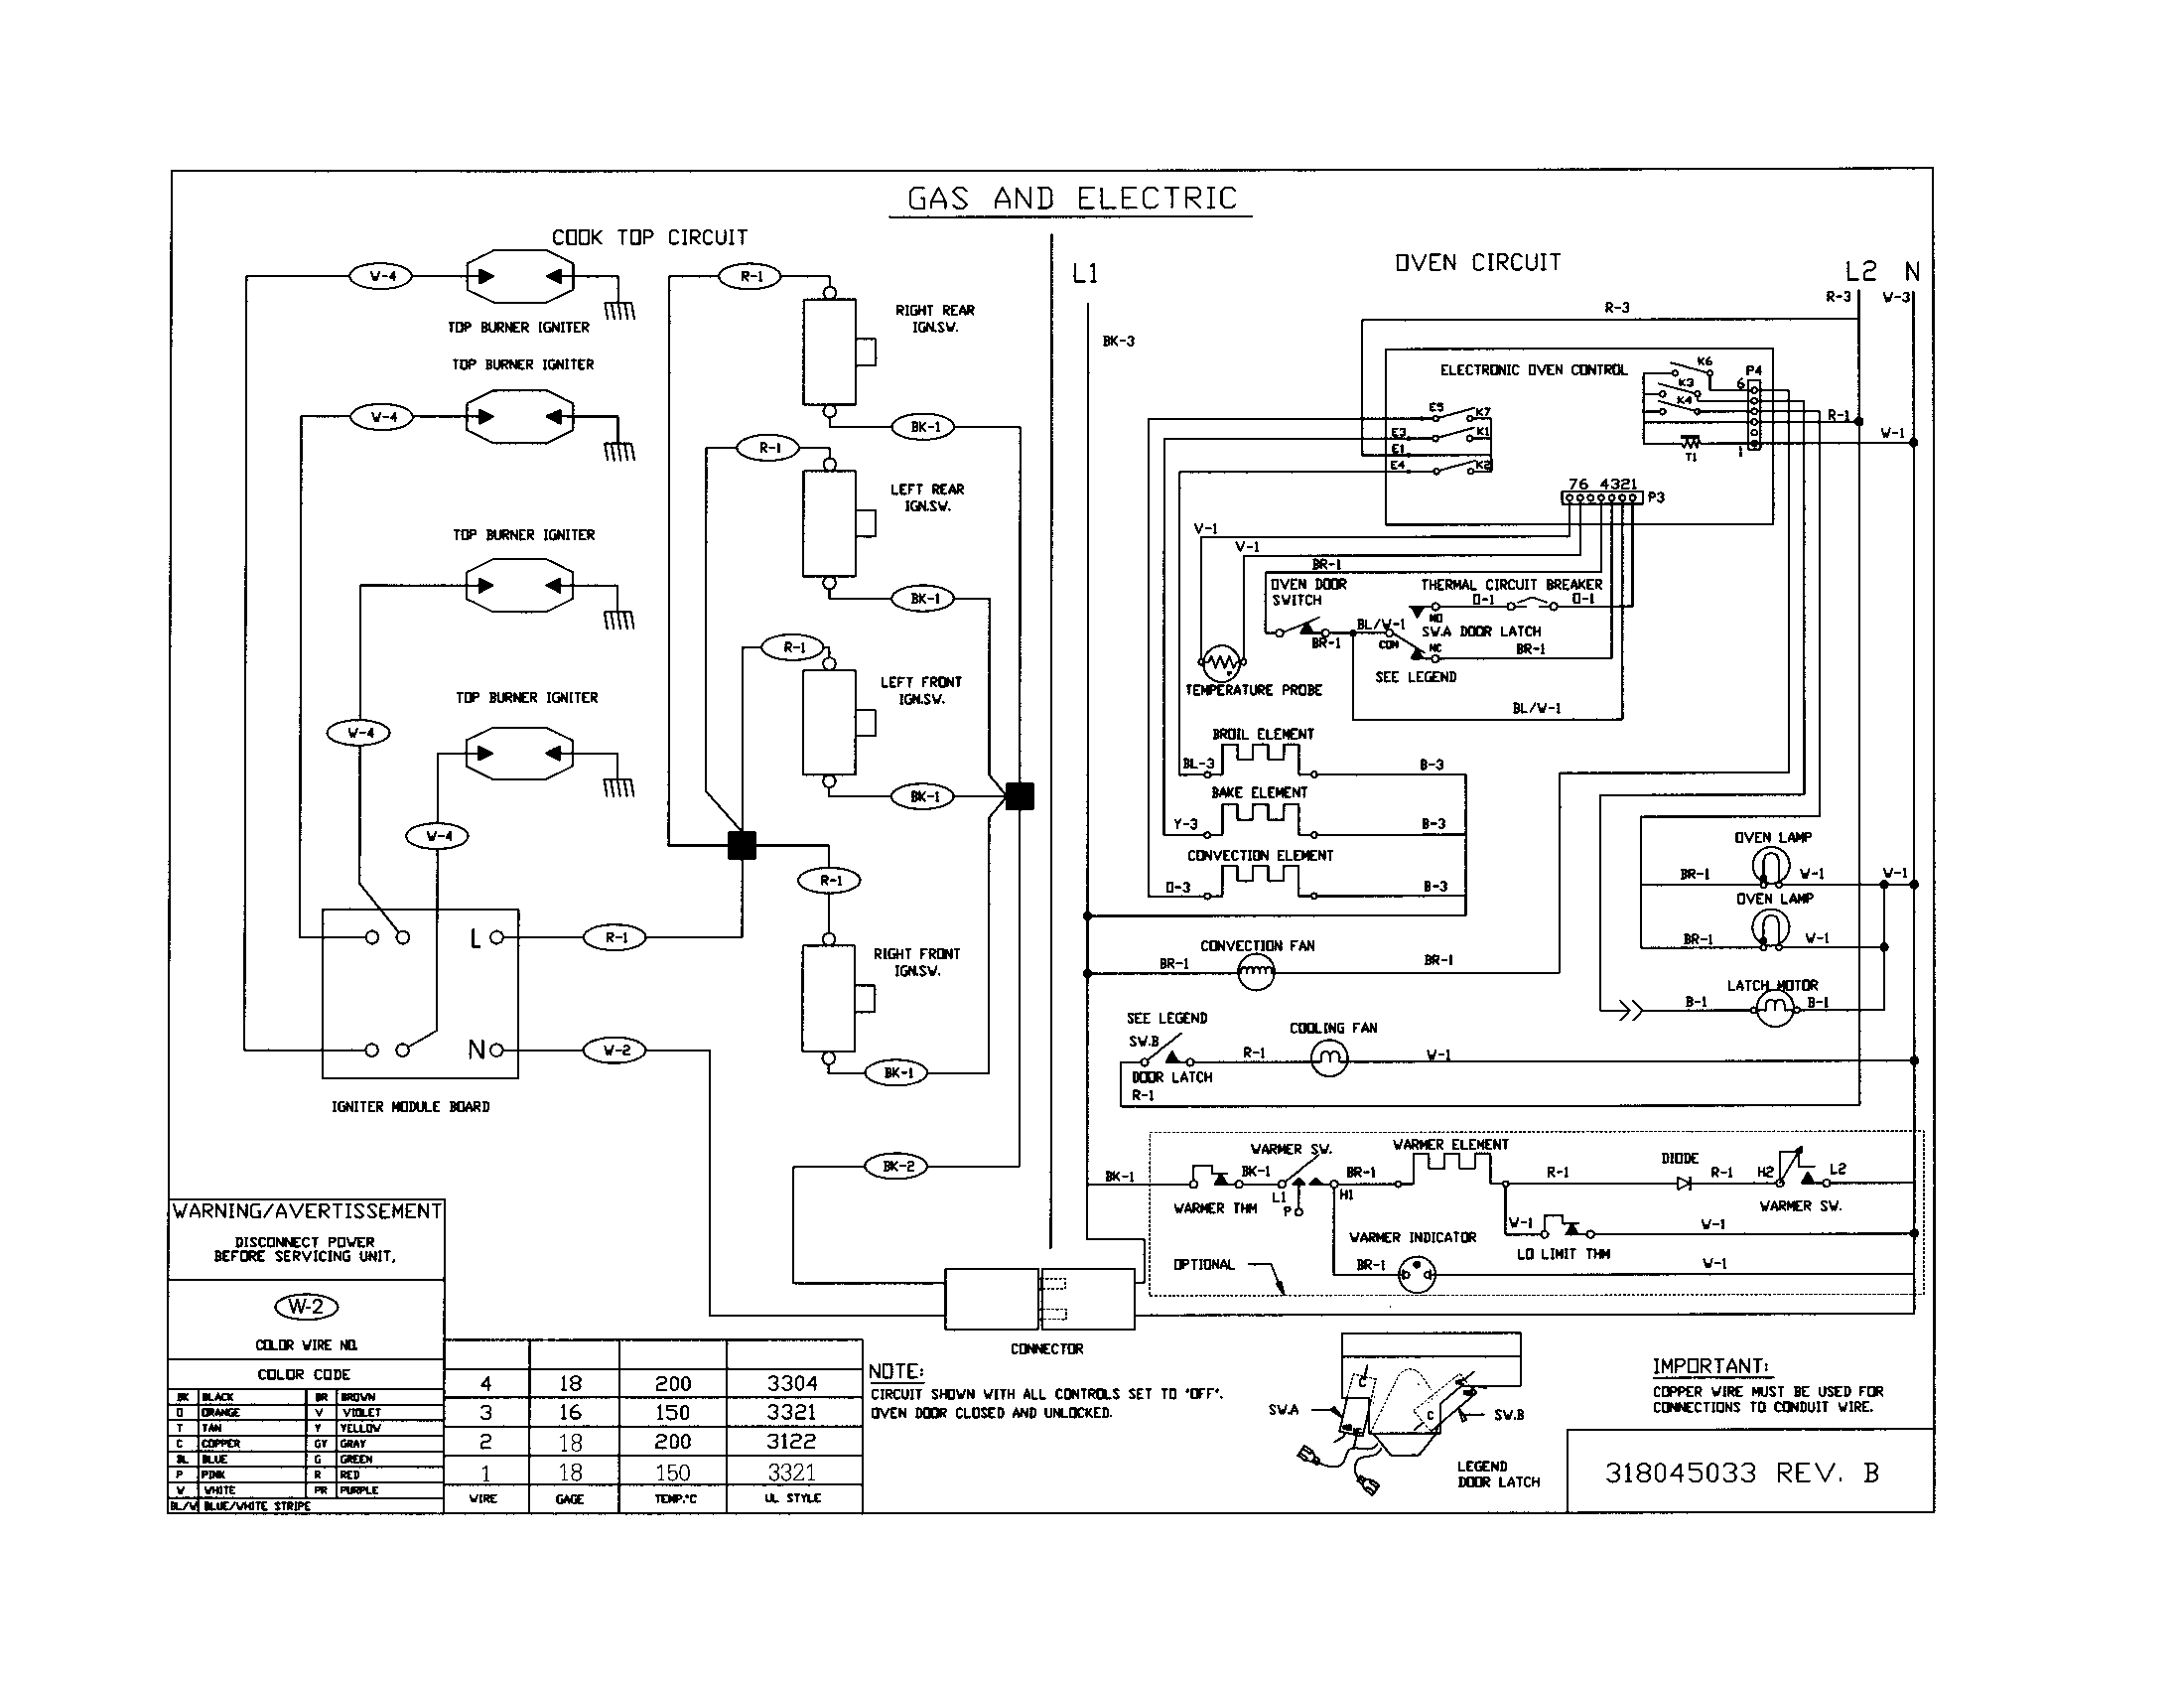 Wiring Diagram Kenmore Washer Model 110 : 39 Wiring